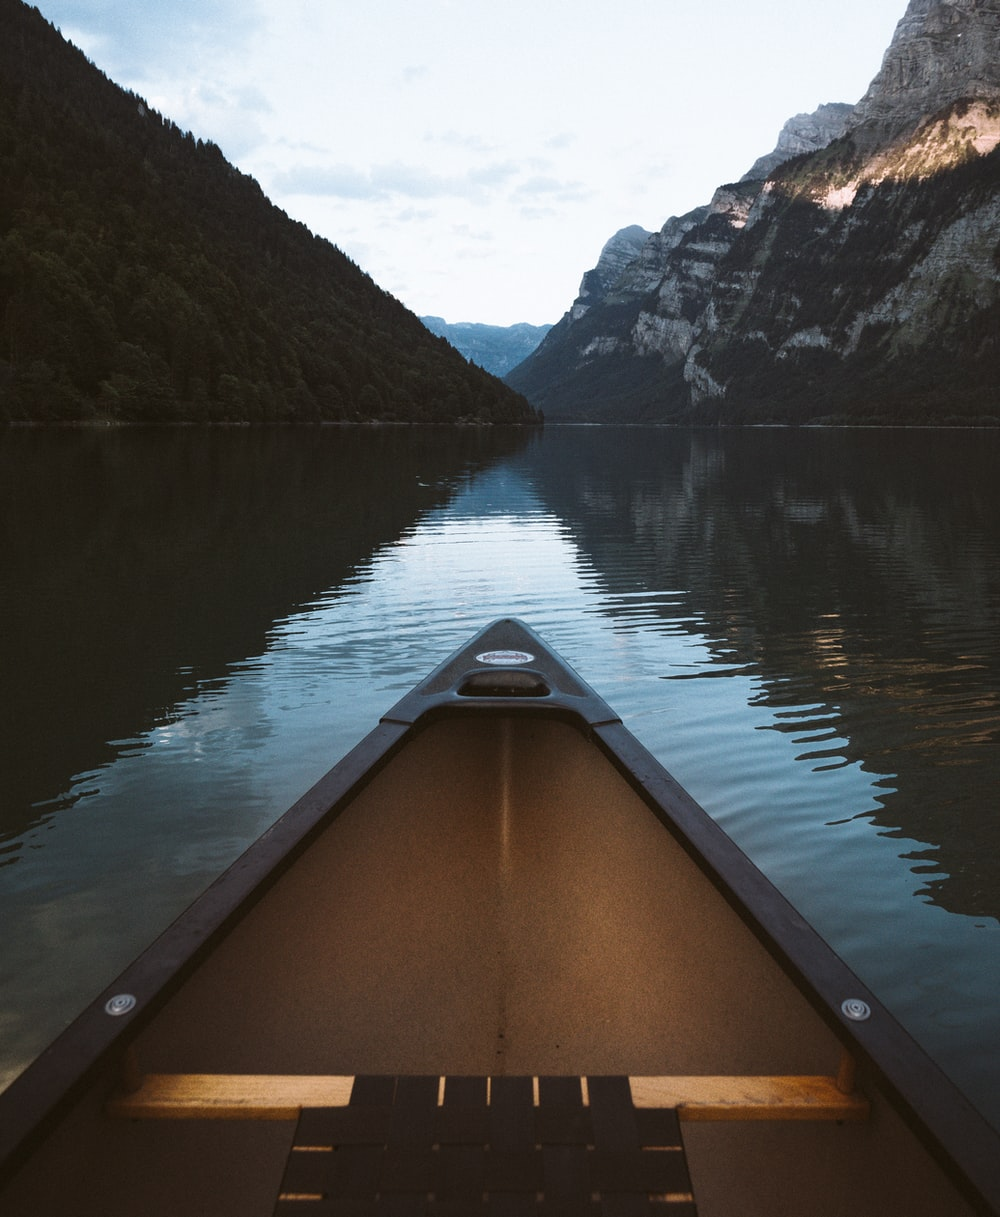 canoe on body of water with mountain background